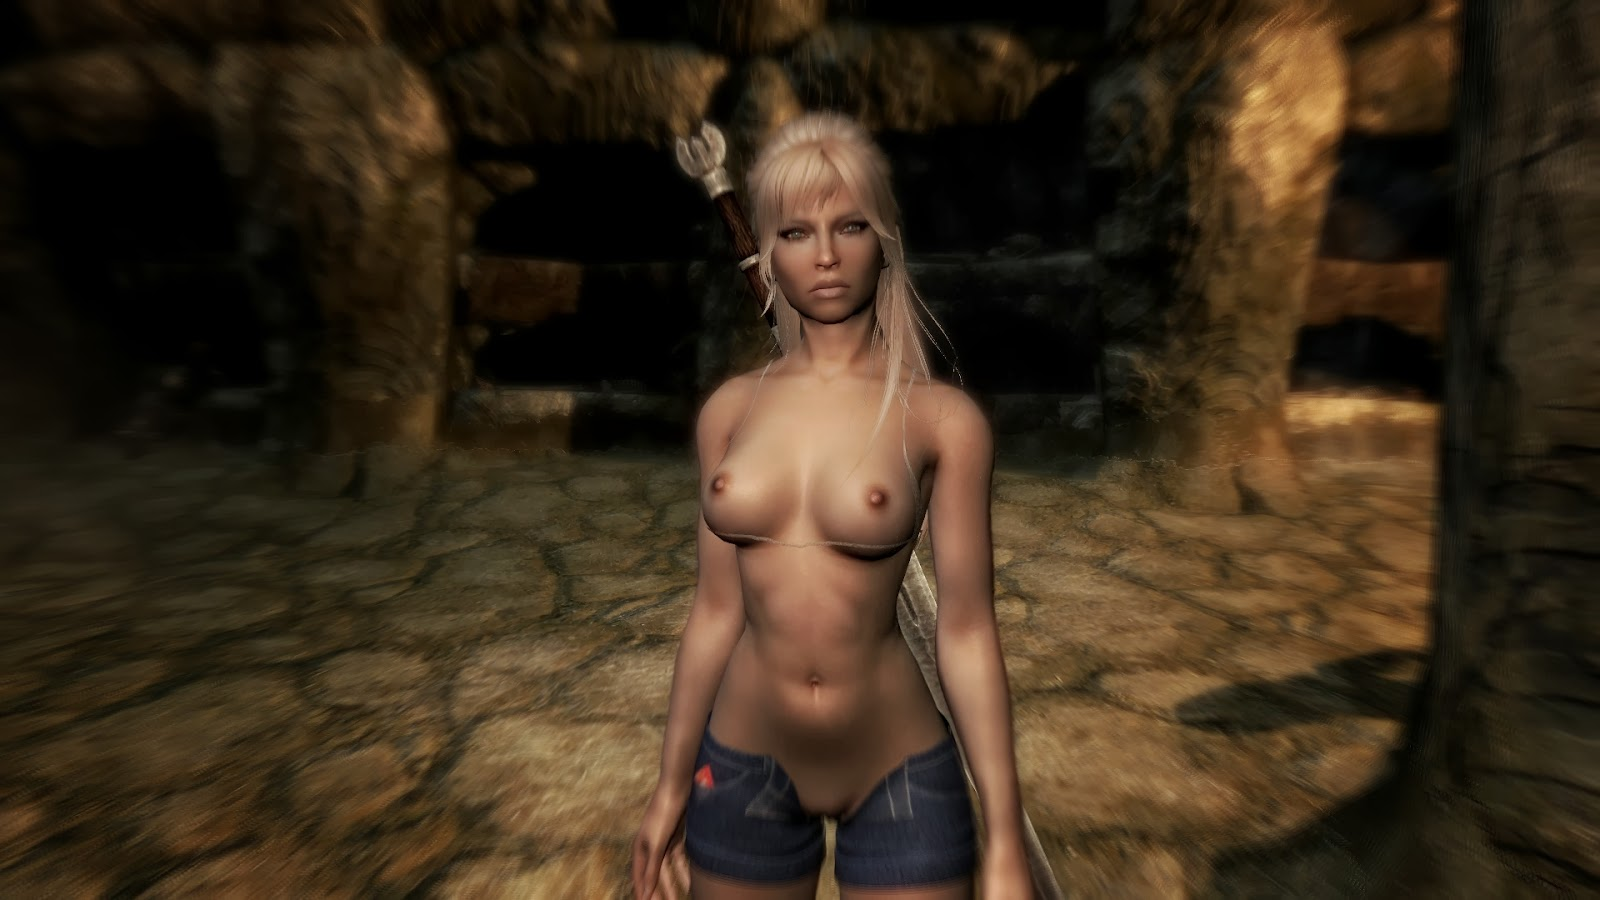 Skyrim erotic free erotic galleries